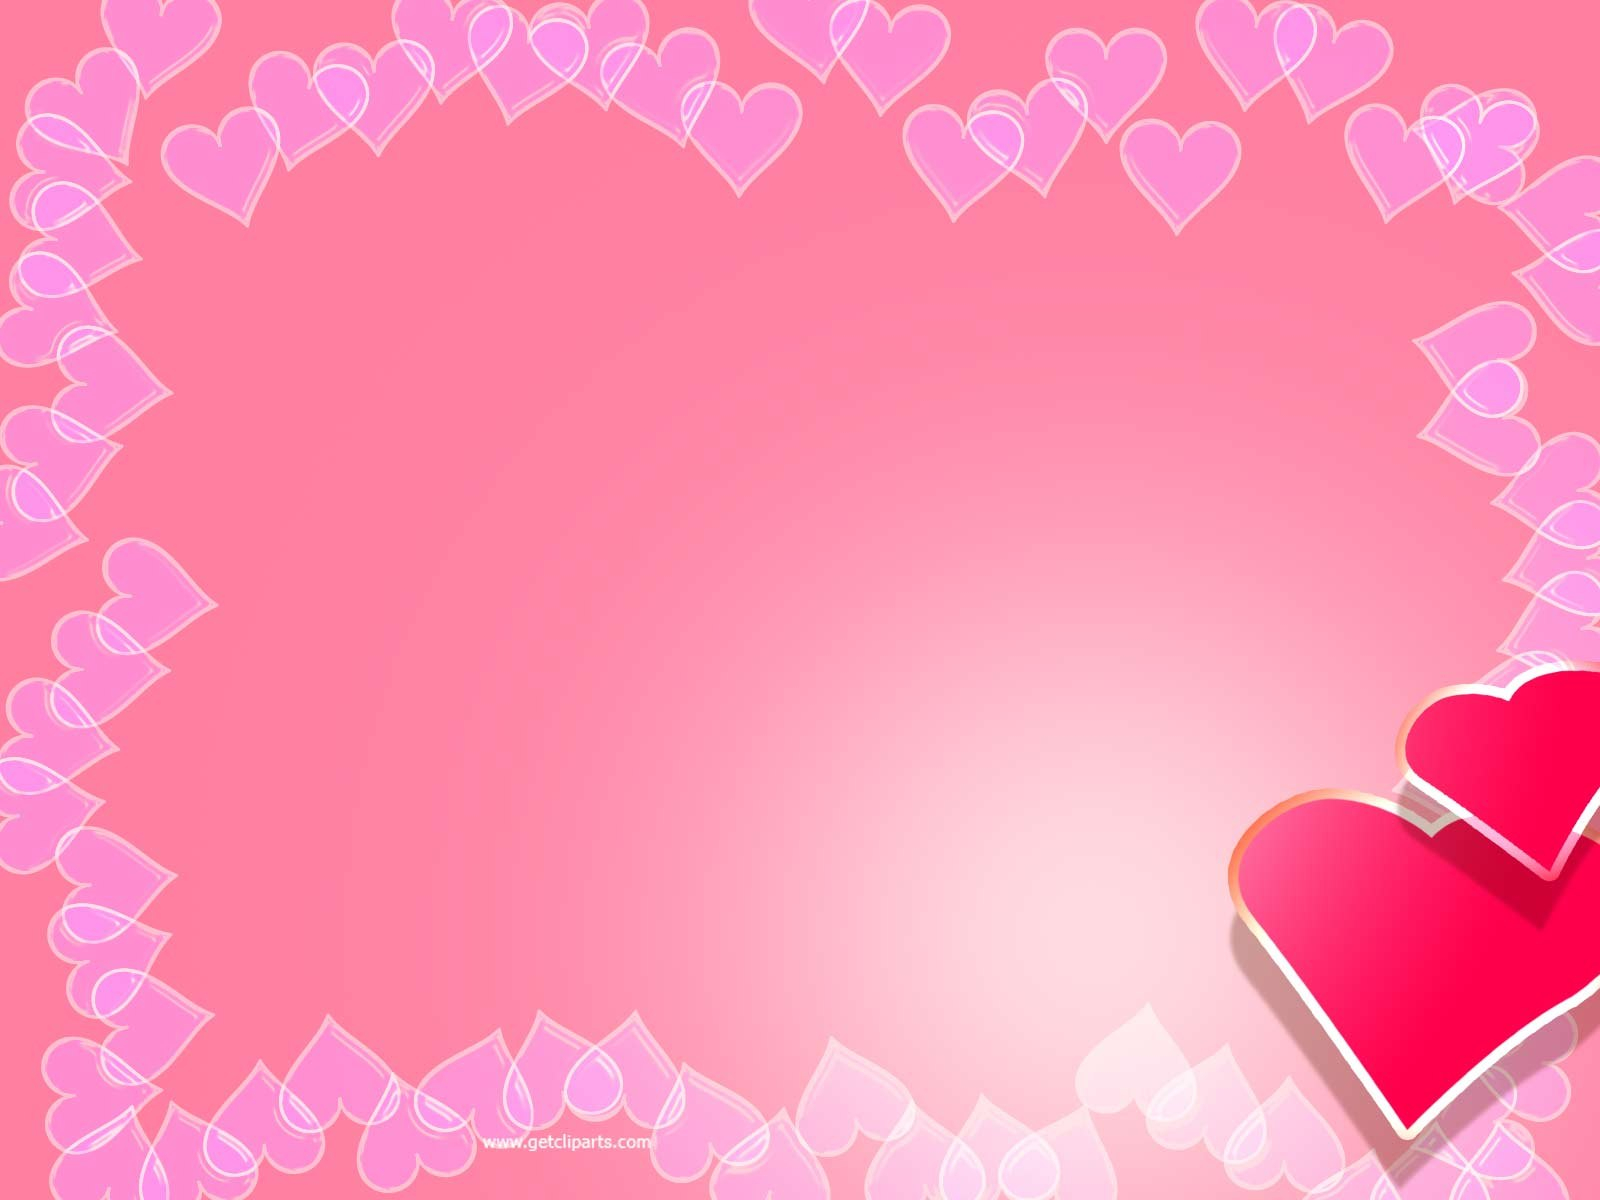 Valentine Backgrounds For Powerpoint  Border And Frame Ppt Templates Regarding Valentine Powerpoint Templates Free